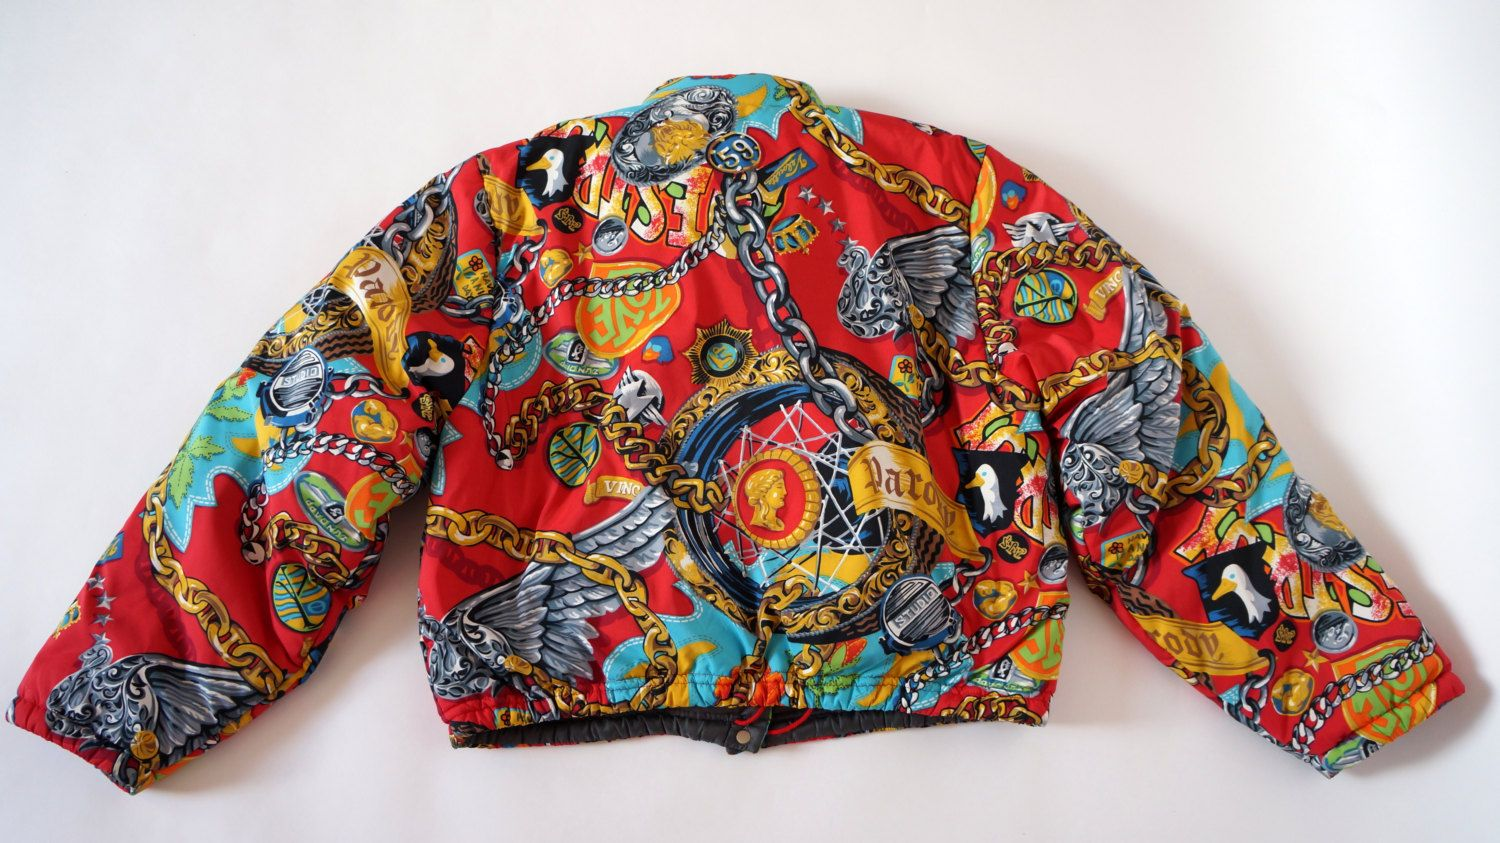 62ac1b0746b Kenzo Jungle vintage print bomber jacket chain eagle lion coin print RARE  item size M by PandoraFashion on Etsy